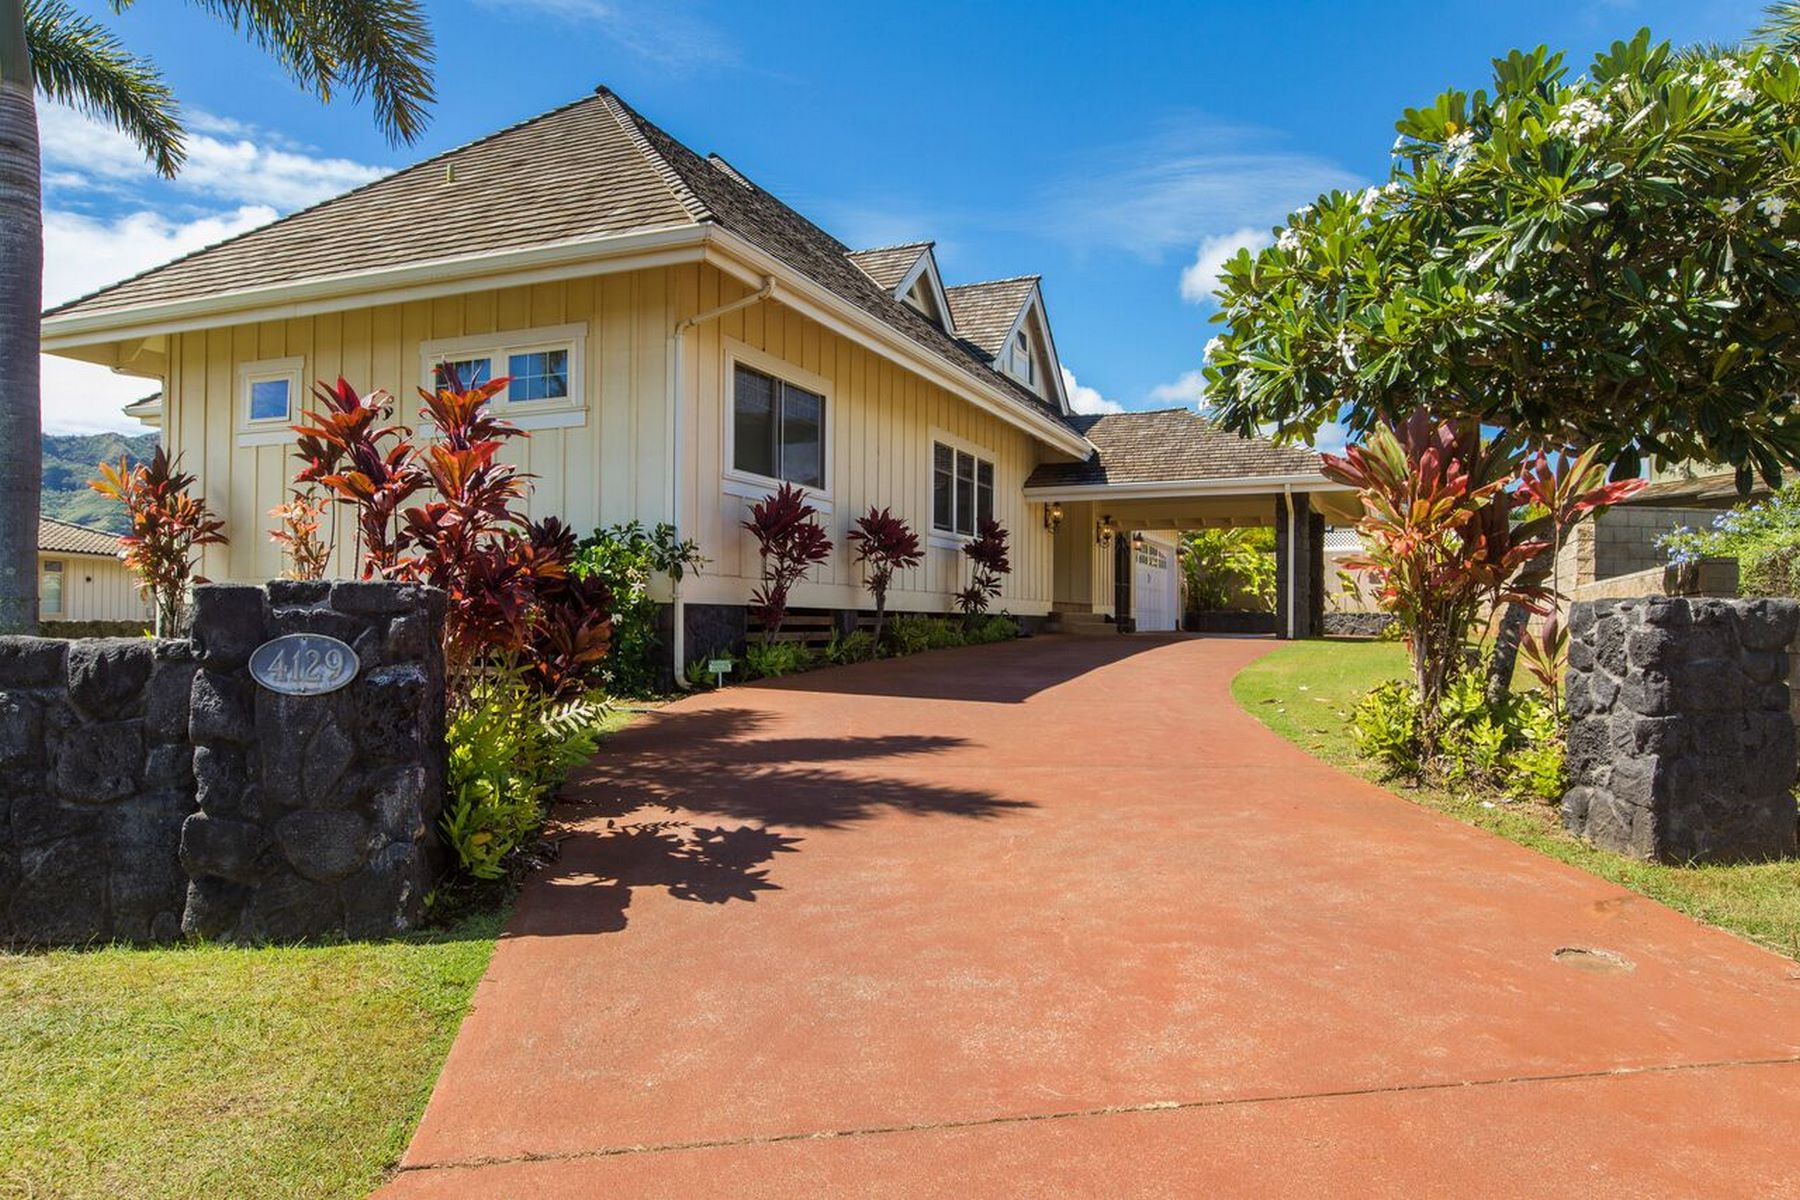 Single Family Home for Sale at Puahala 4129 Puhala PL Lihue, Hawaii 96766 United States